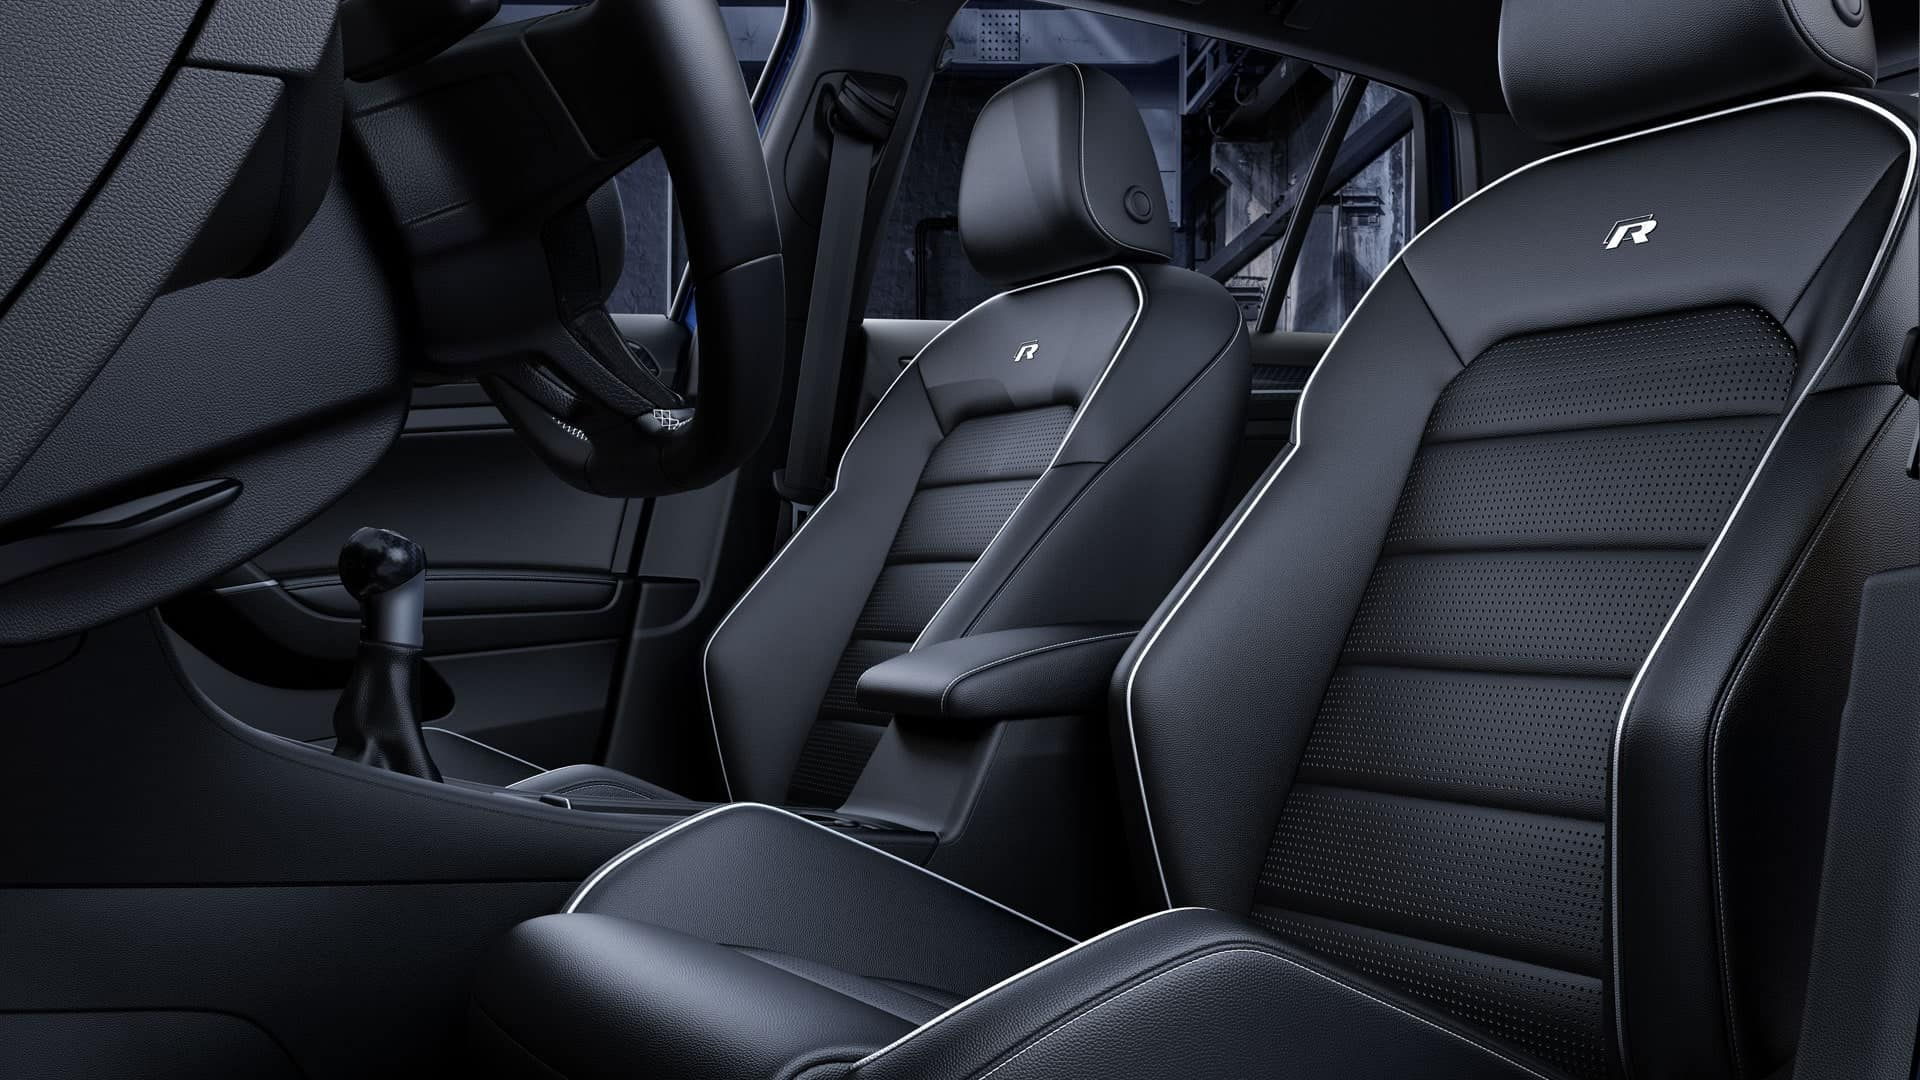 2019 VW Golf R bucket seats